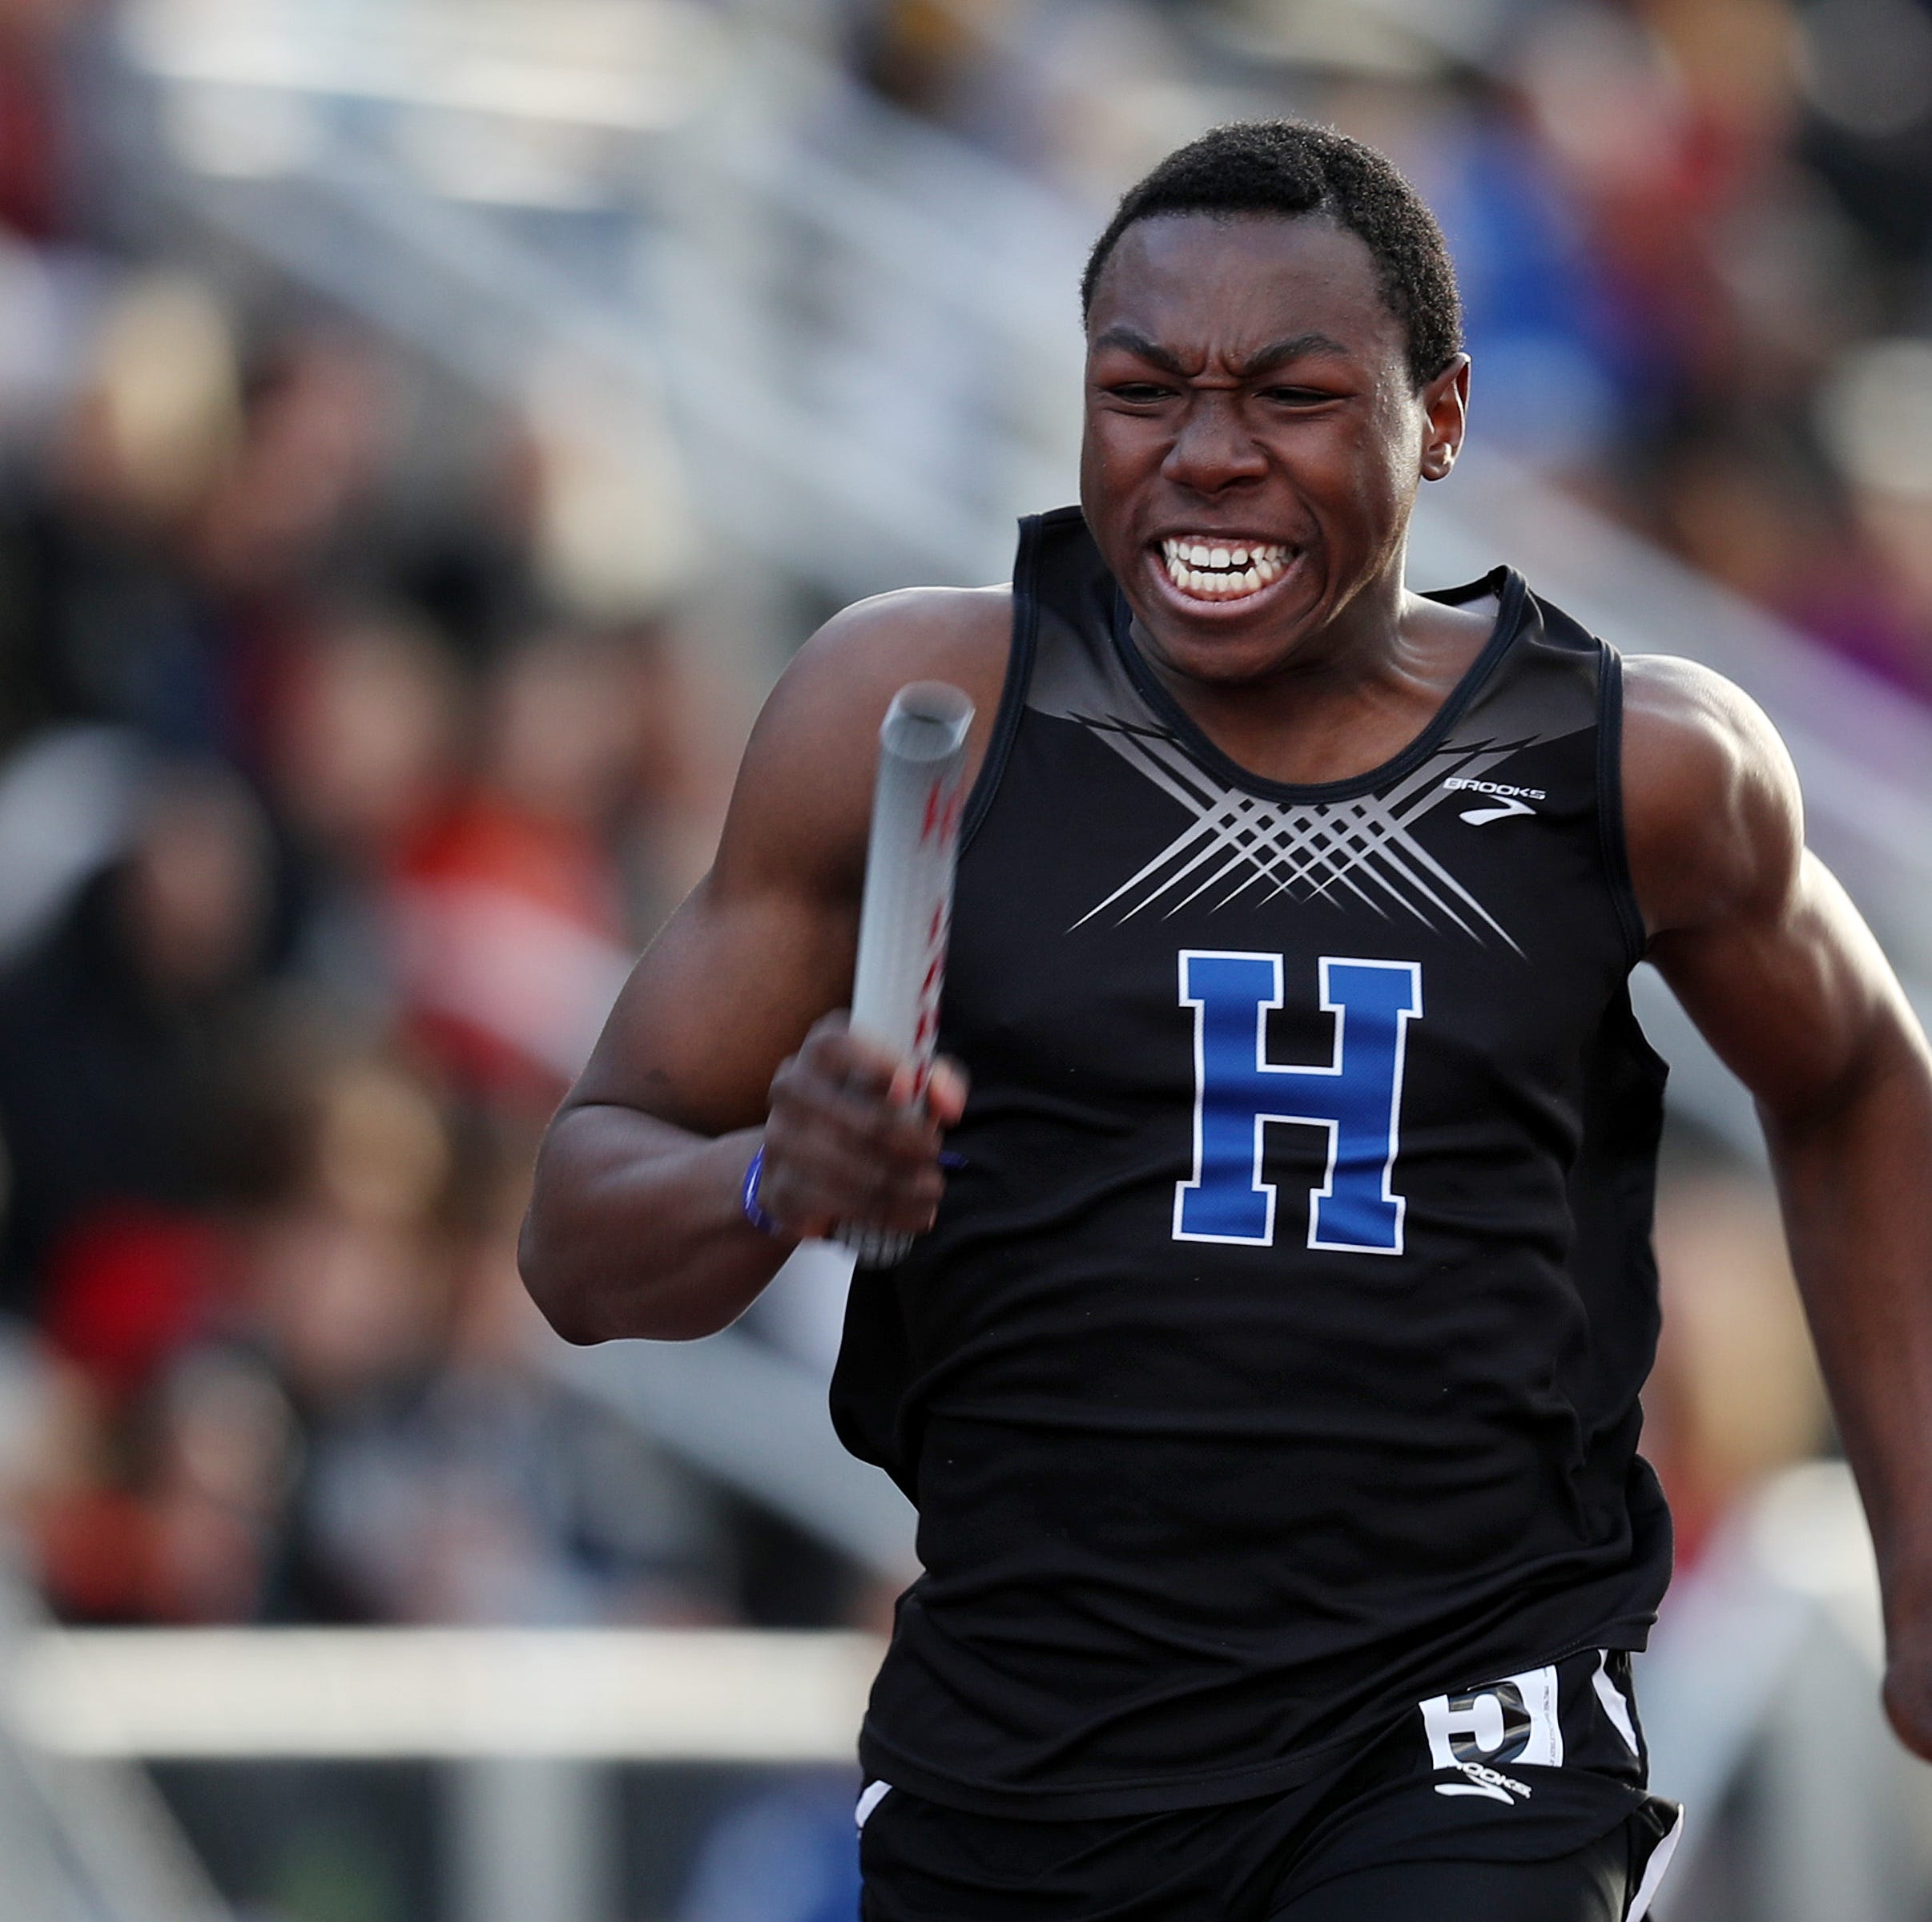 Howard Wood Dakota Relays: Hopkins sprinter soars into boys special event